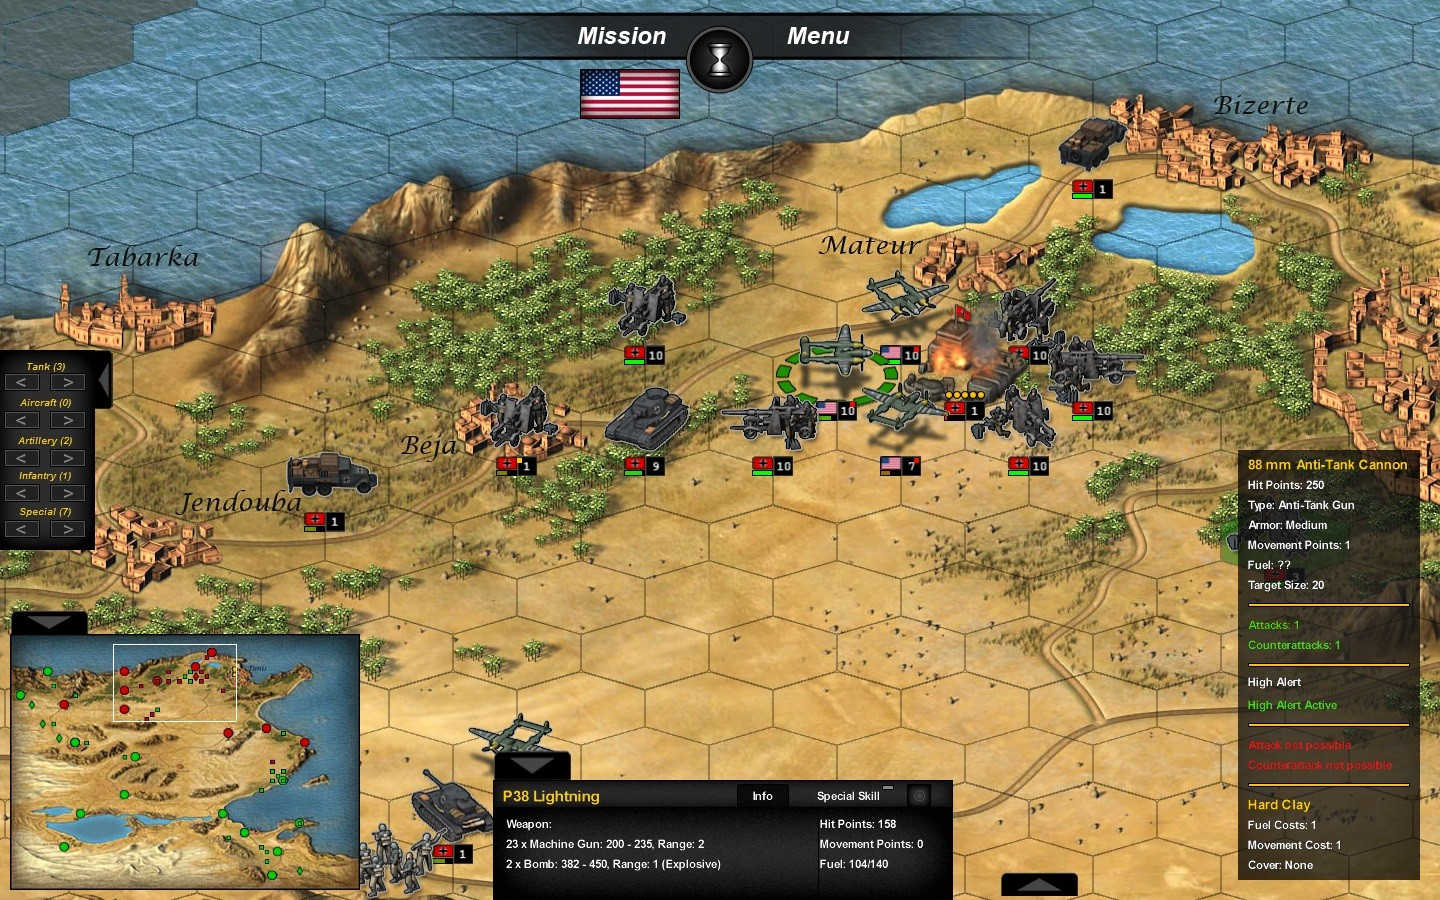 Tank operations european campaign pc review gamewatcher tunisia keeping on top of individual battles across large maps is tricky but rewarding gumiabroncs Image collections